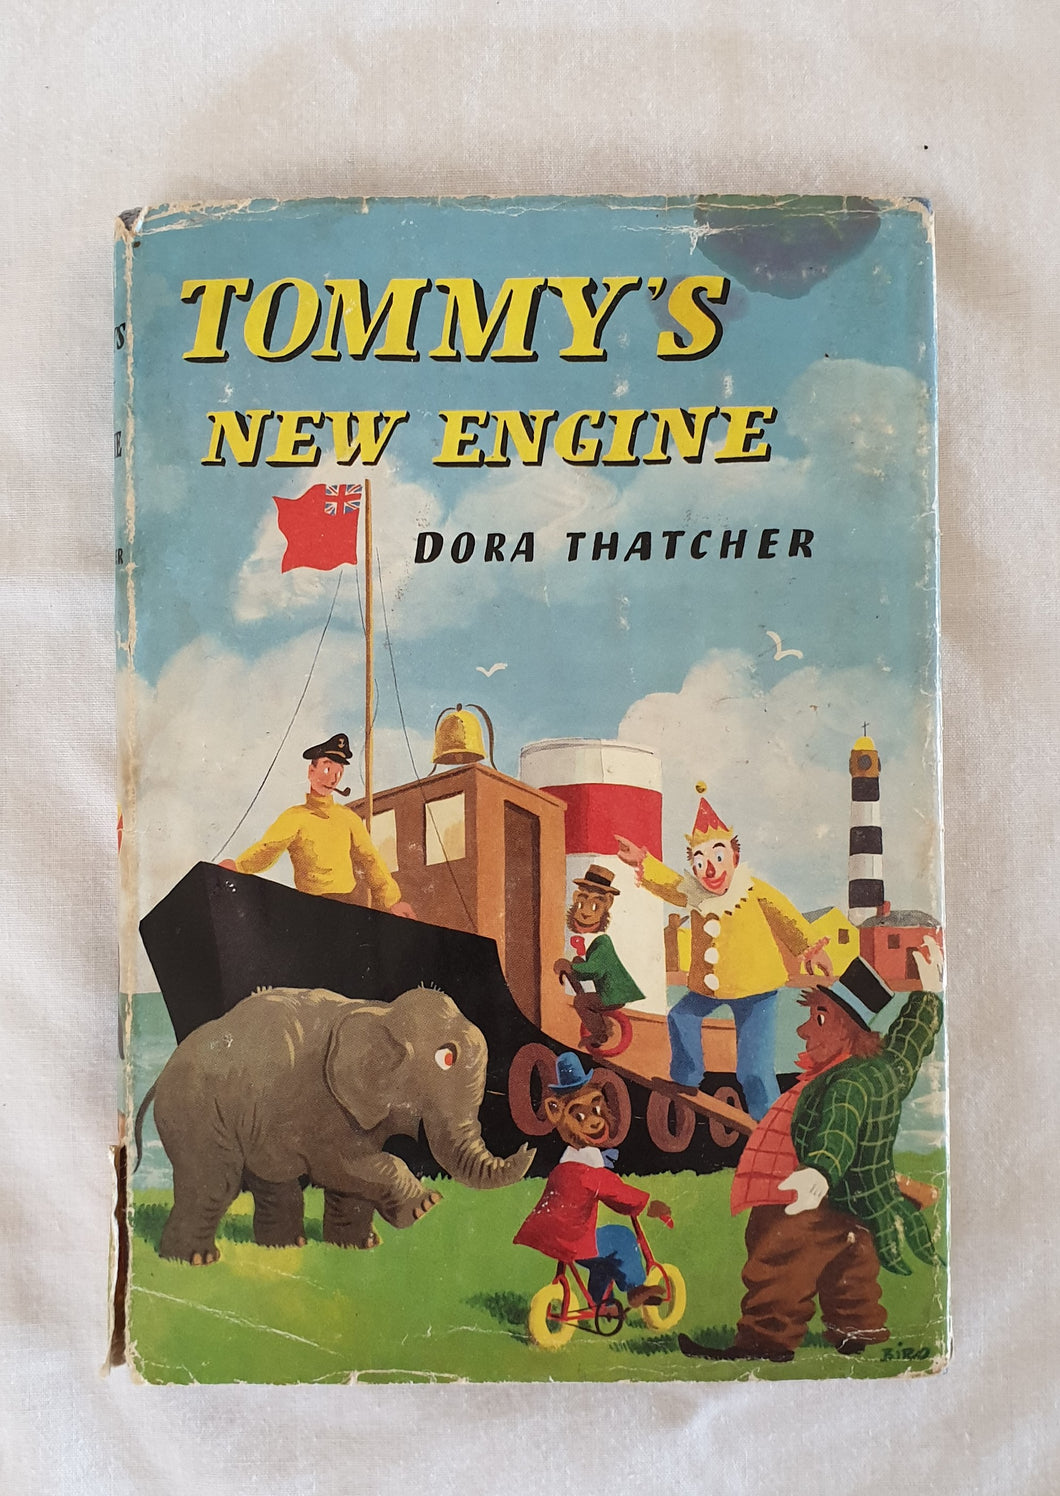 Tommy's New Engine by Dora Thatcher